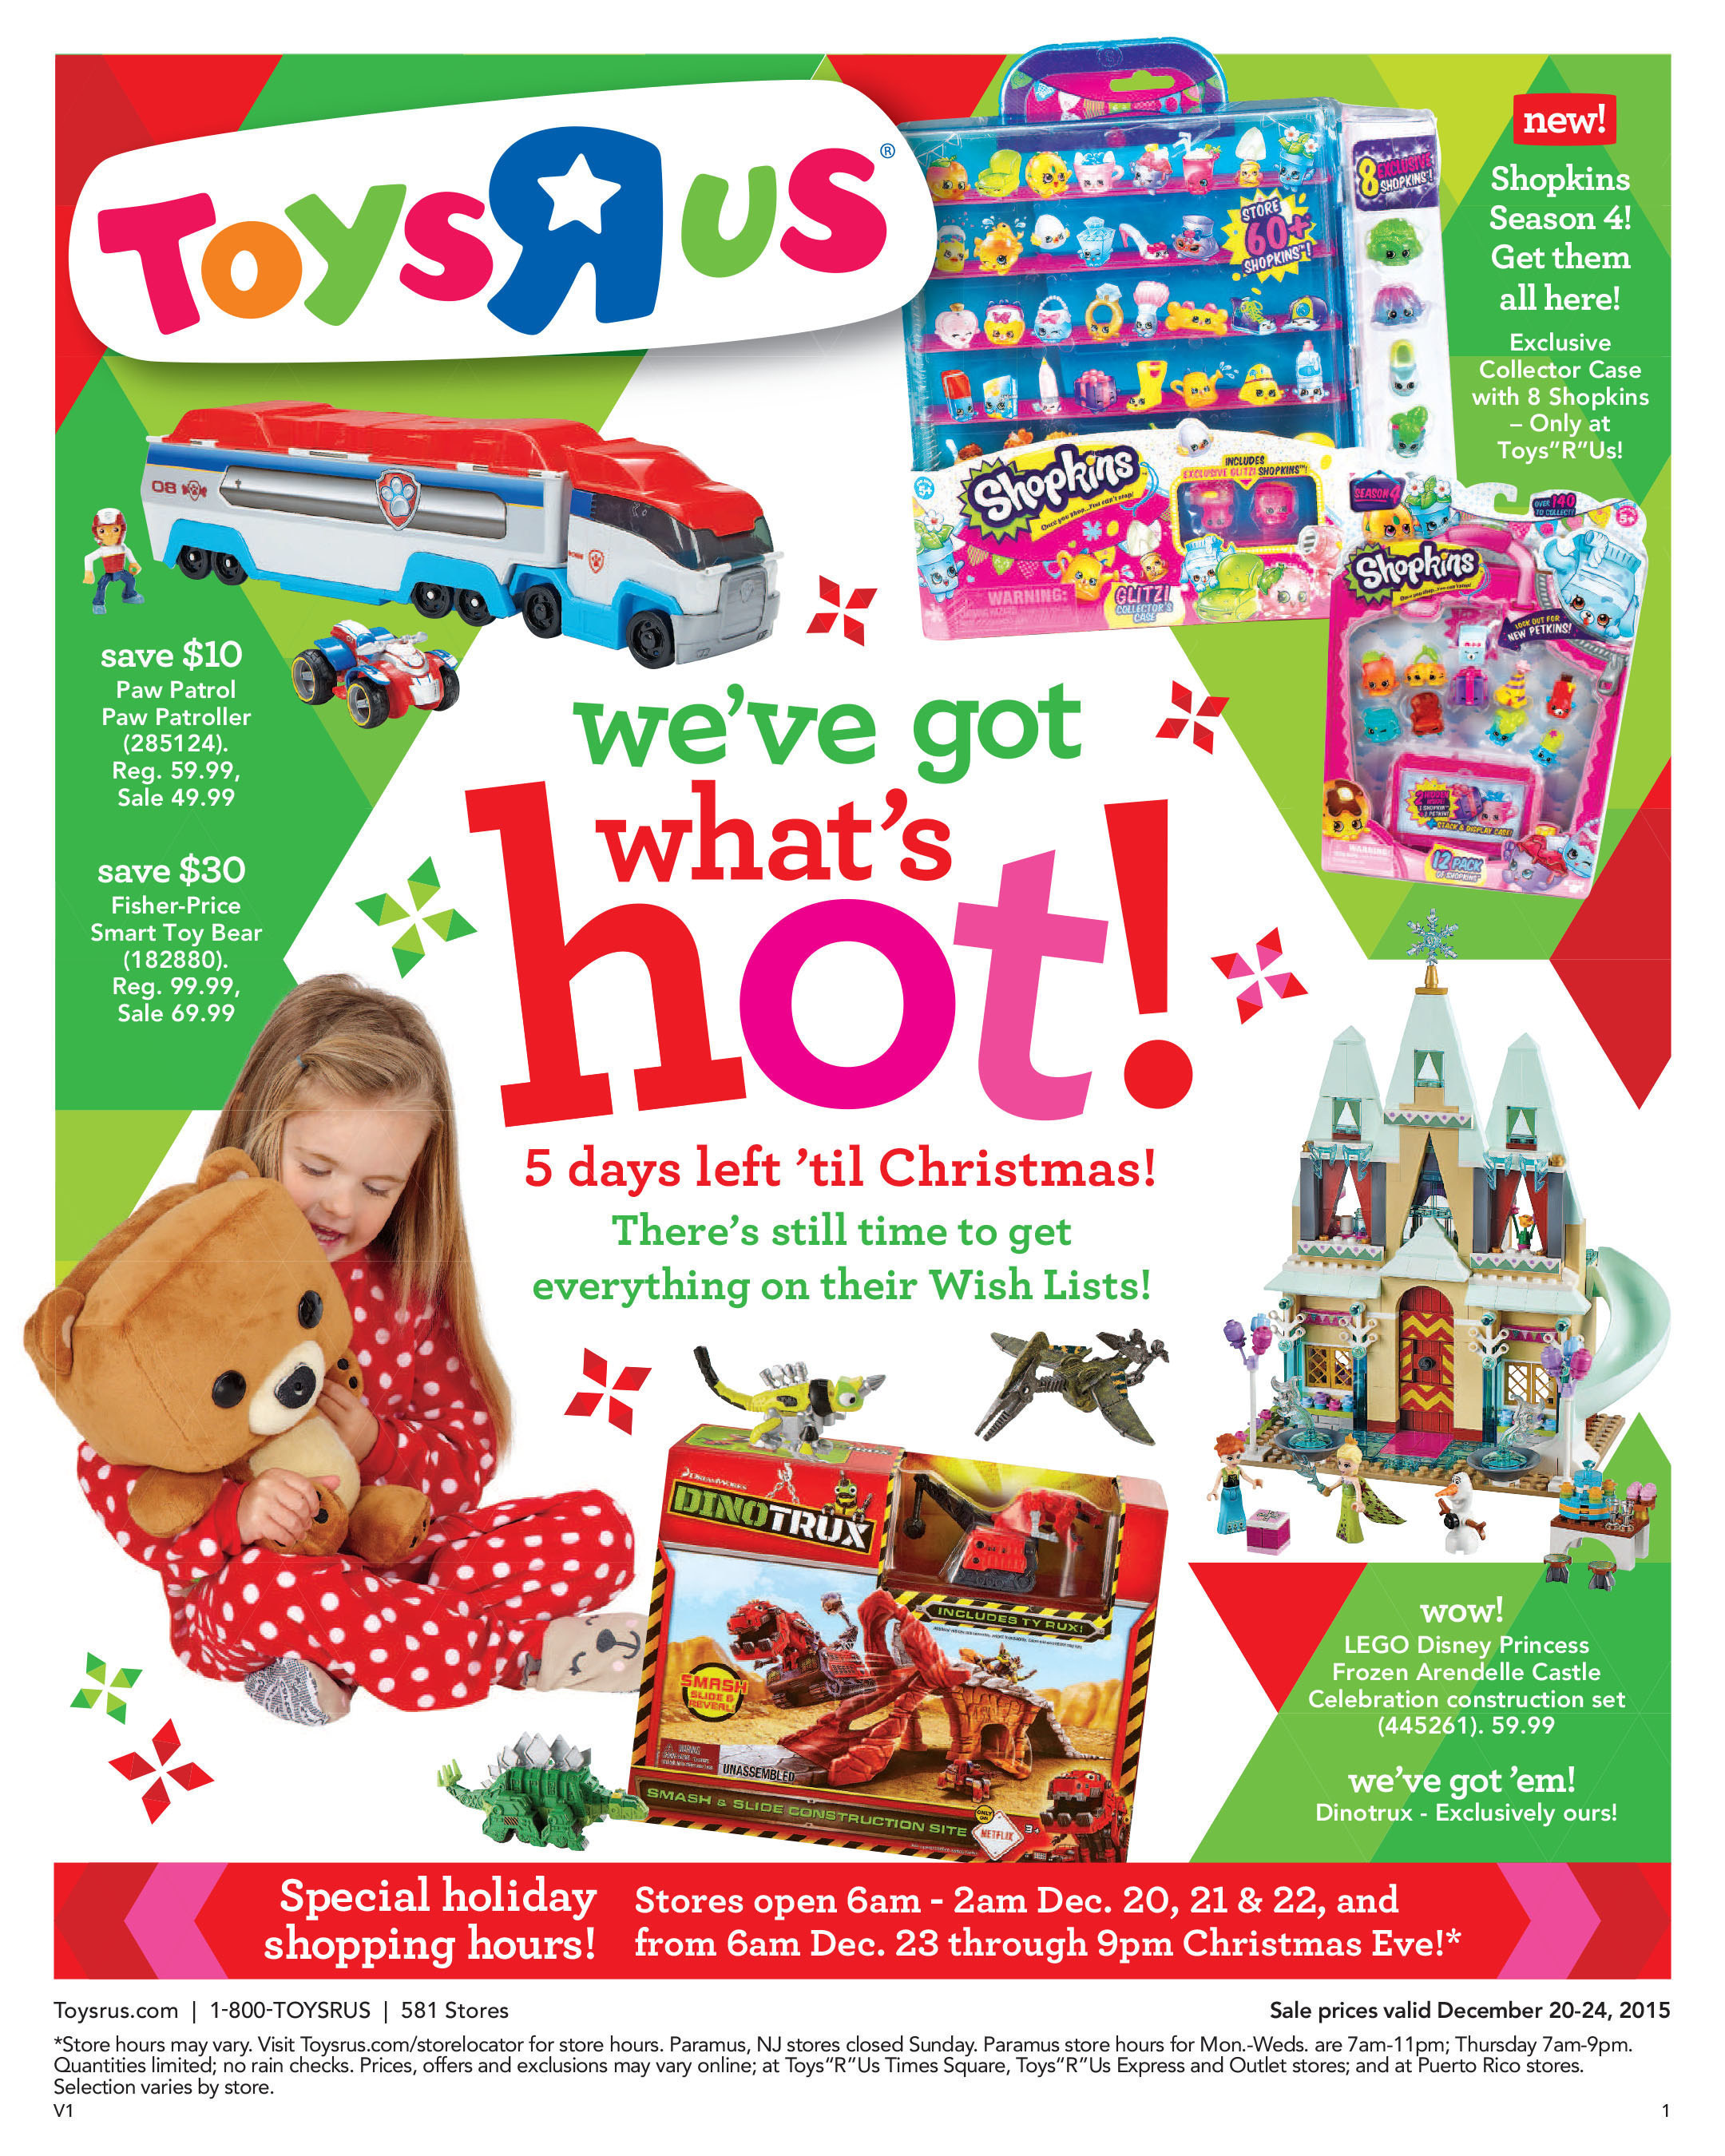 Toys R Us Christmas : Toys r us offers extended store hours and special savings